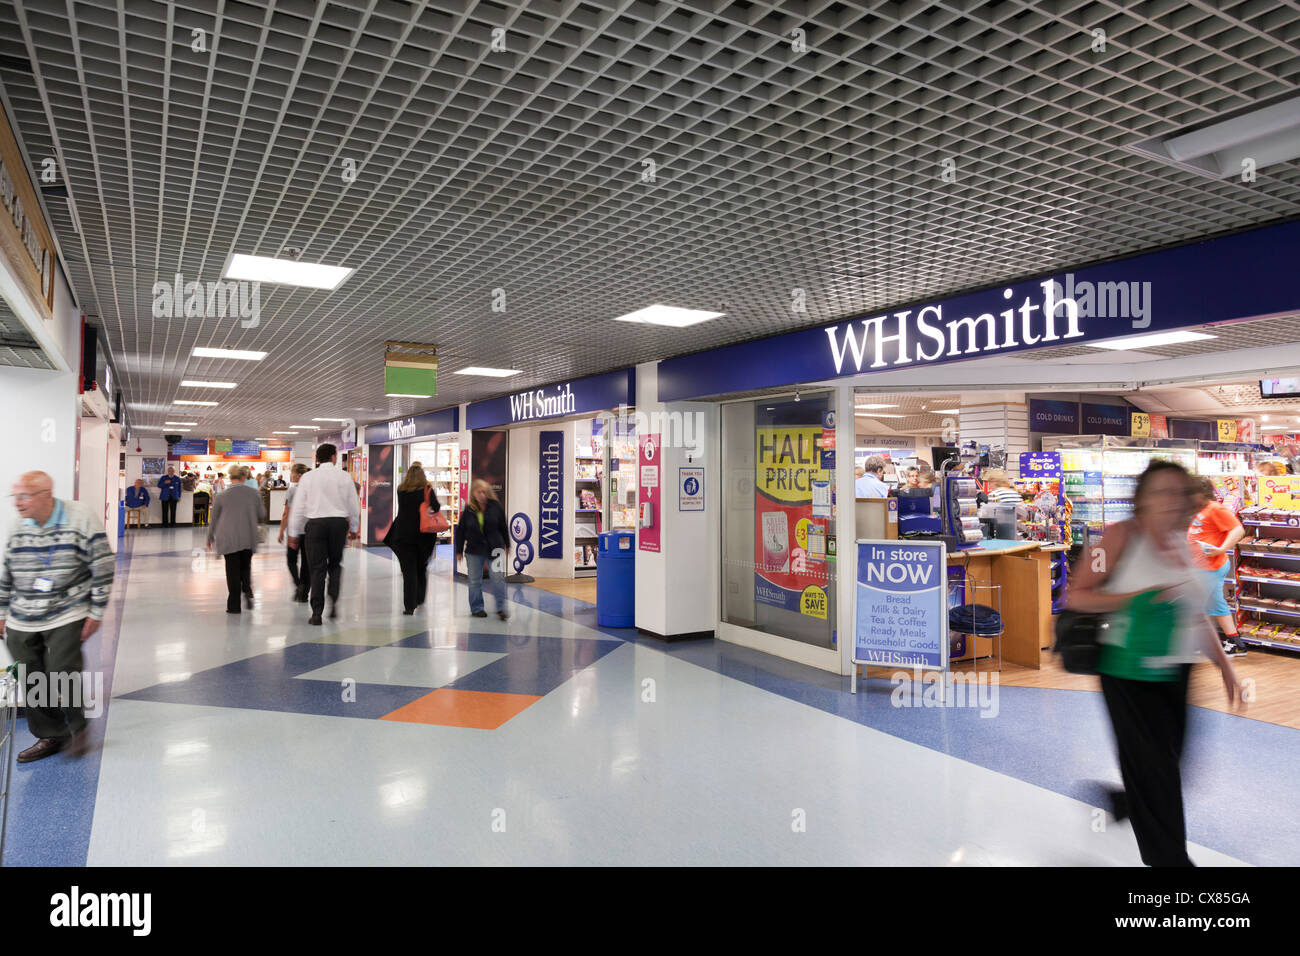 WH Smith and shops inside entrance foyer of Southampton General Hospital - Stock Image